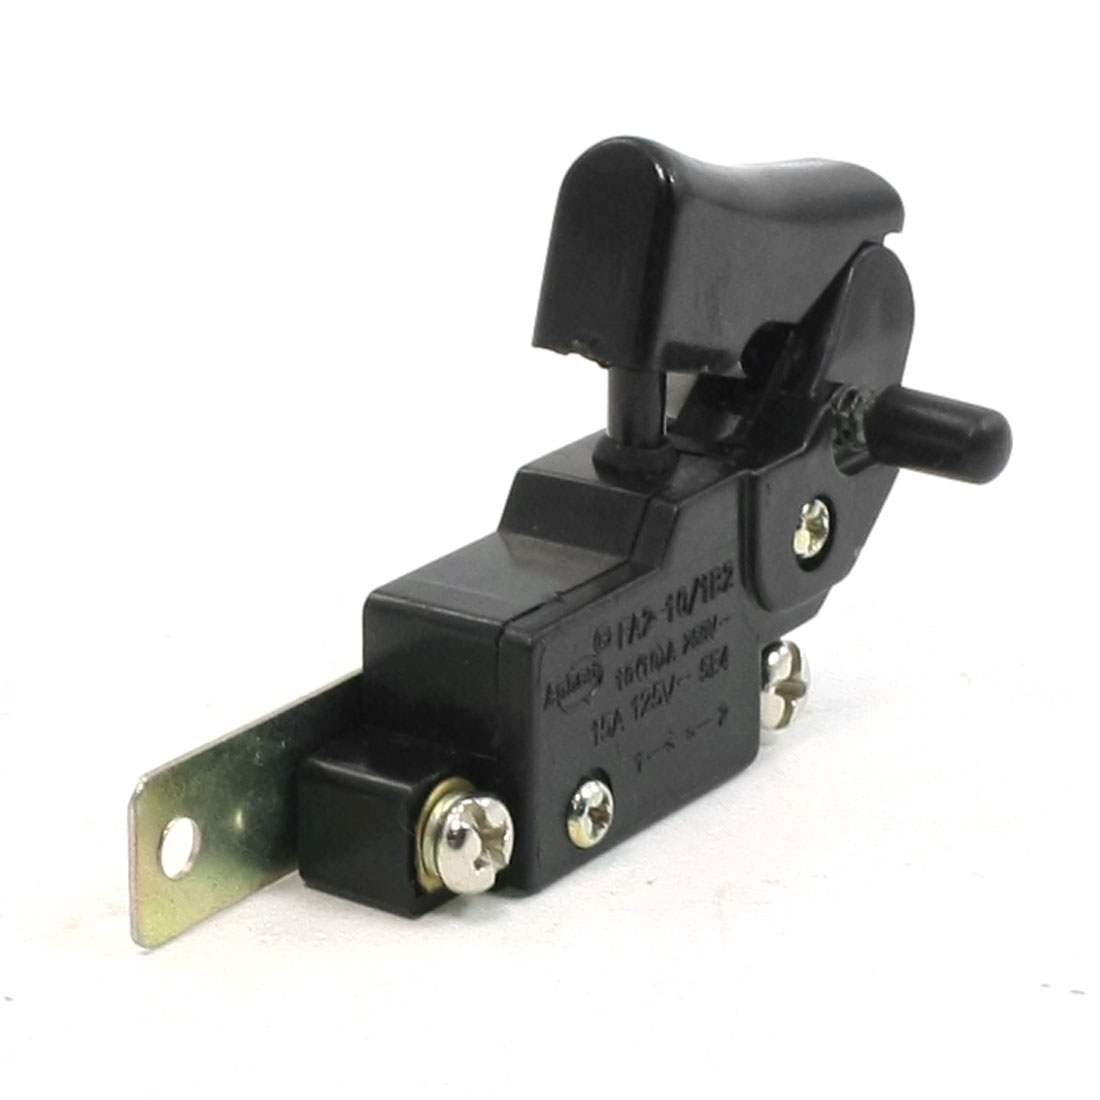 Cut off Machine Trigger Switch SPST AC 250V/10A 125V/15A for Hitachi CC14